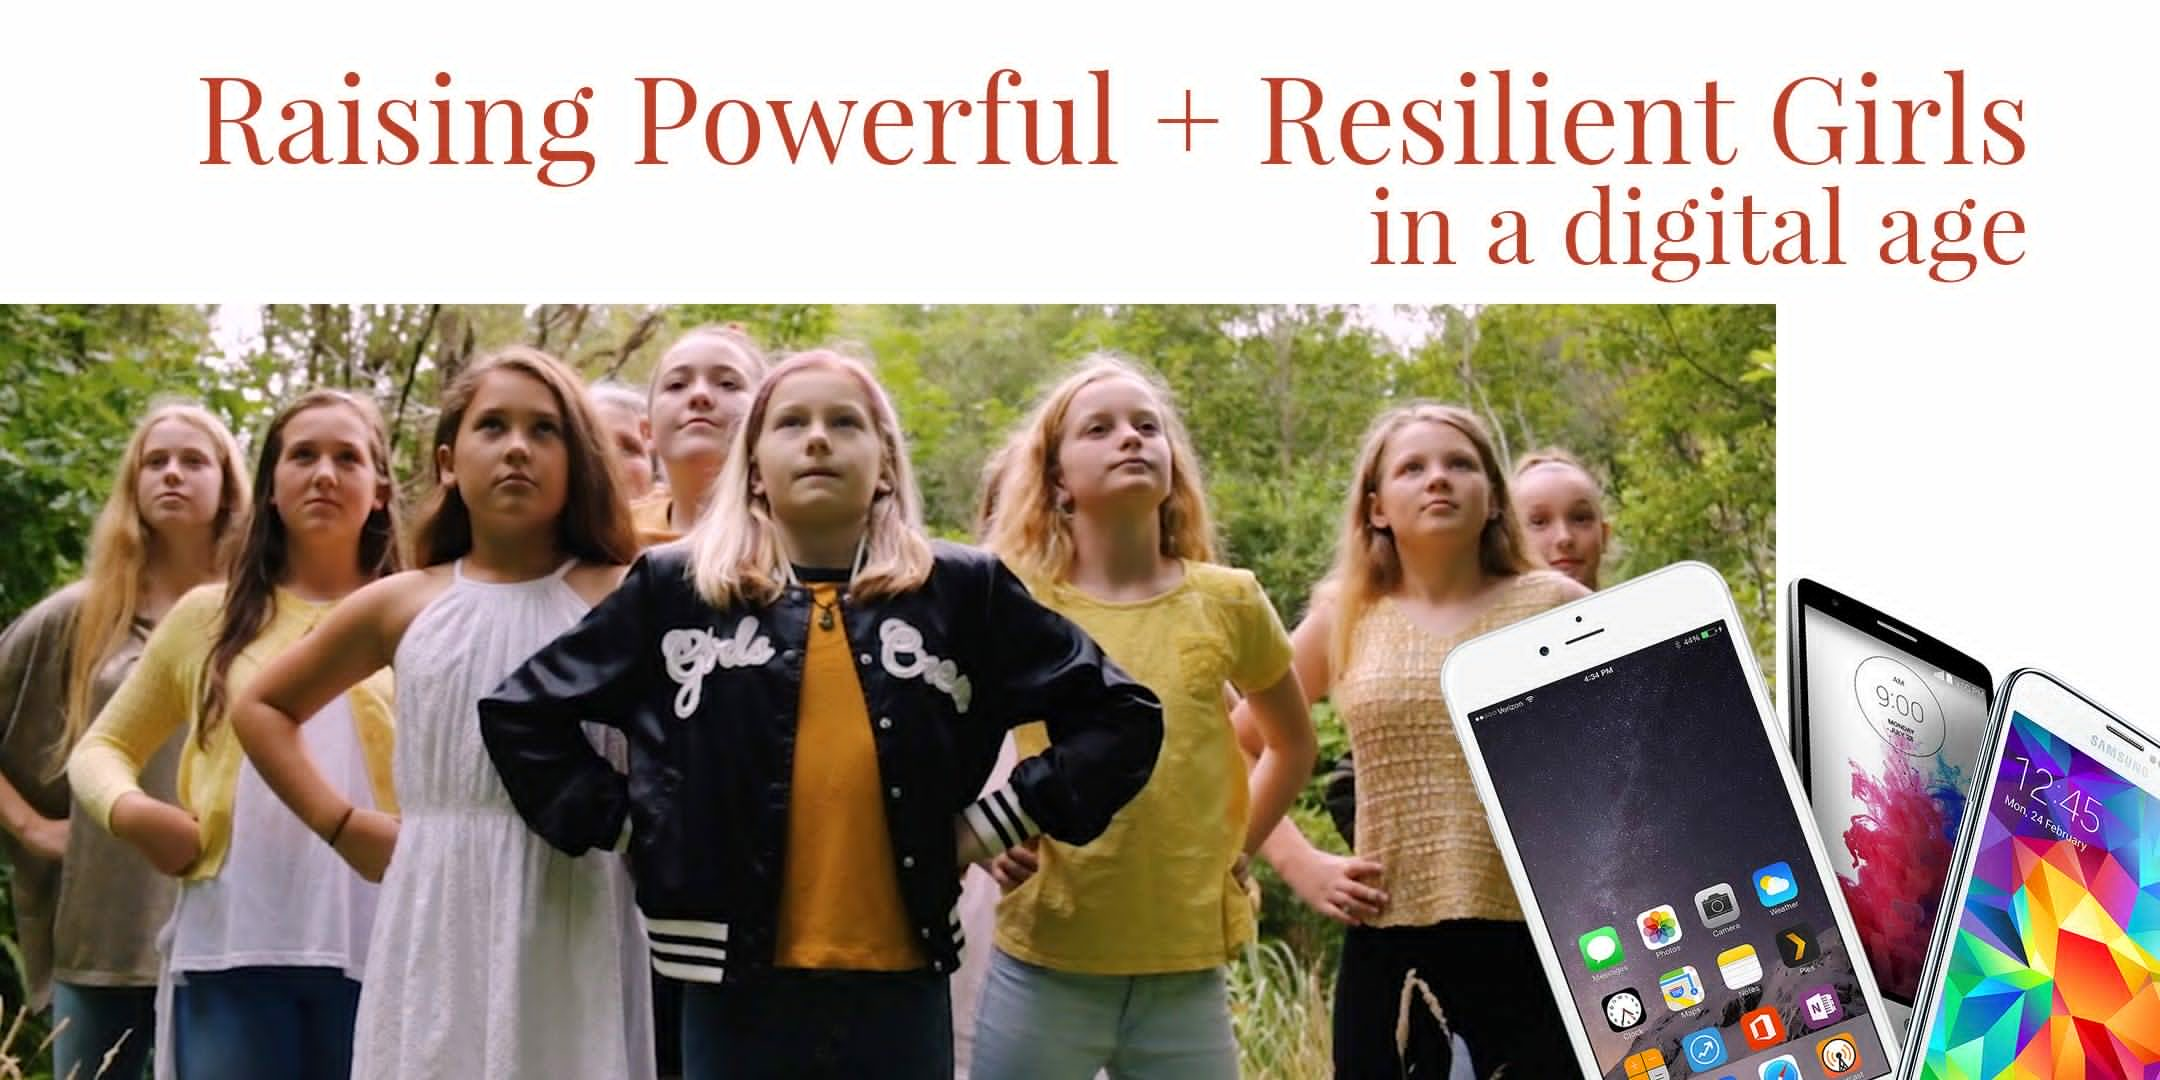 Raising-Powerful-Girls-in-a-DIgital-age